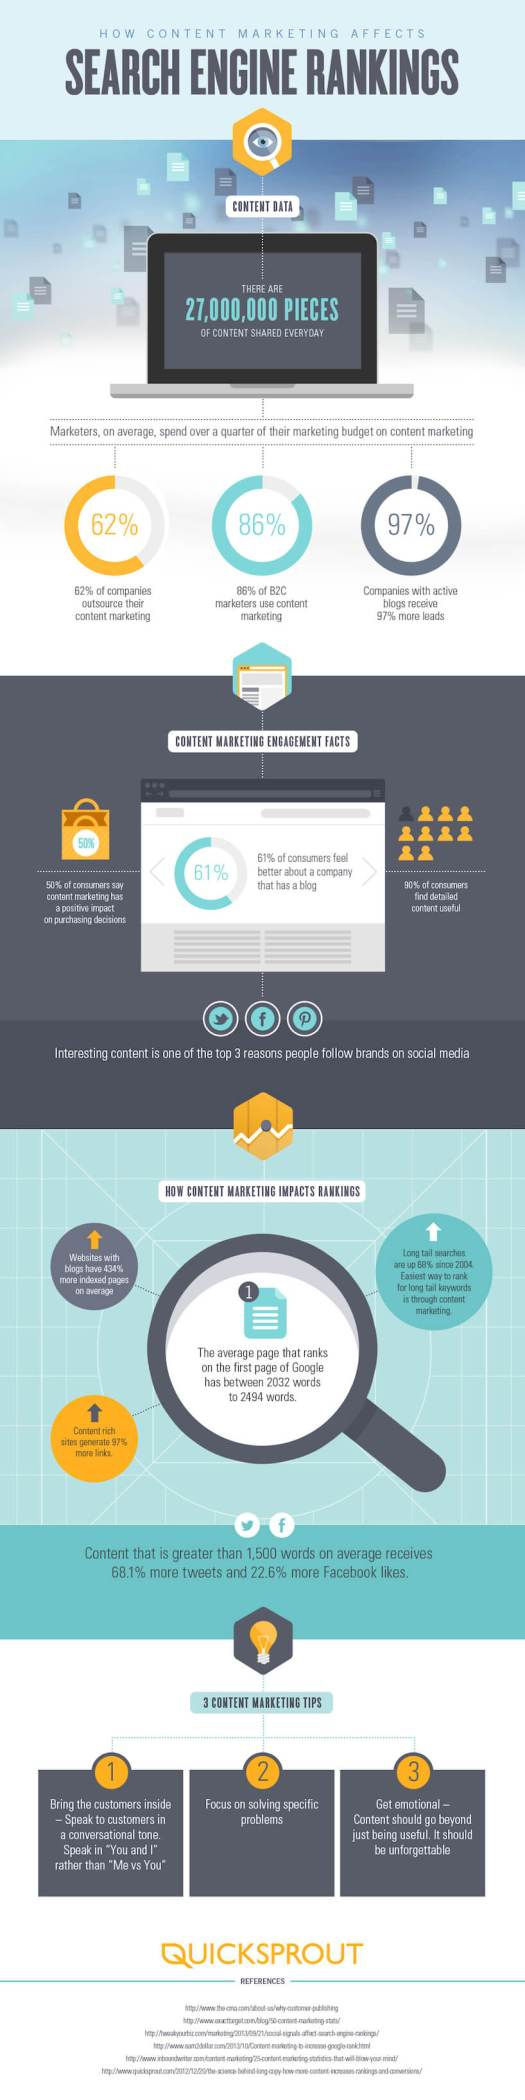 howcontentmarketingaffectssearchenginerankings - Why Content Marketing is so Important to your Medical/Dental Practice [INFOGRAPHIC]